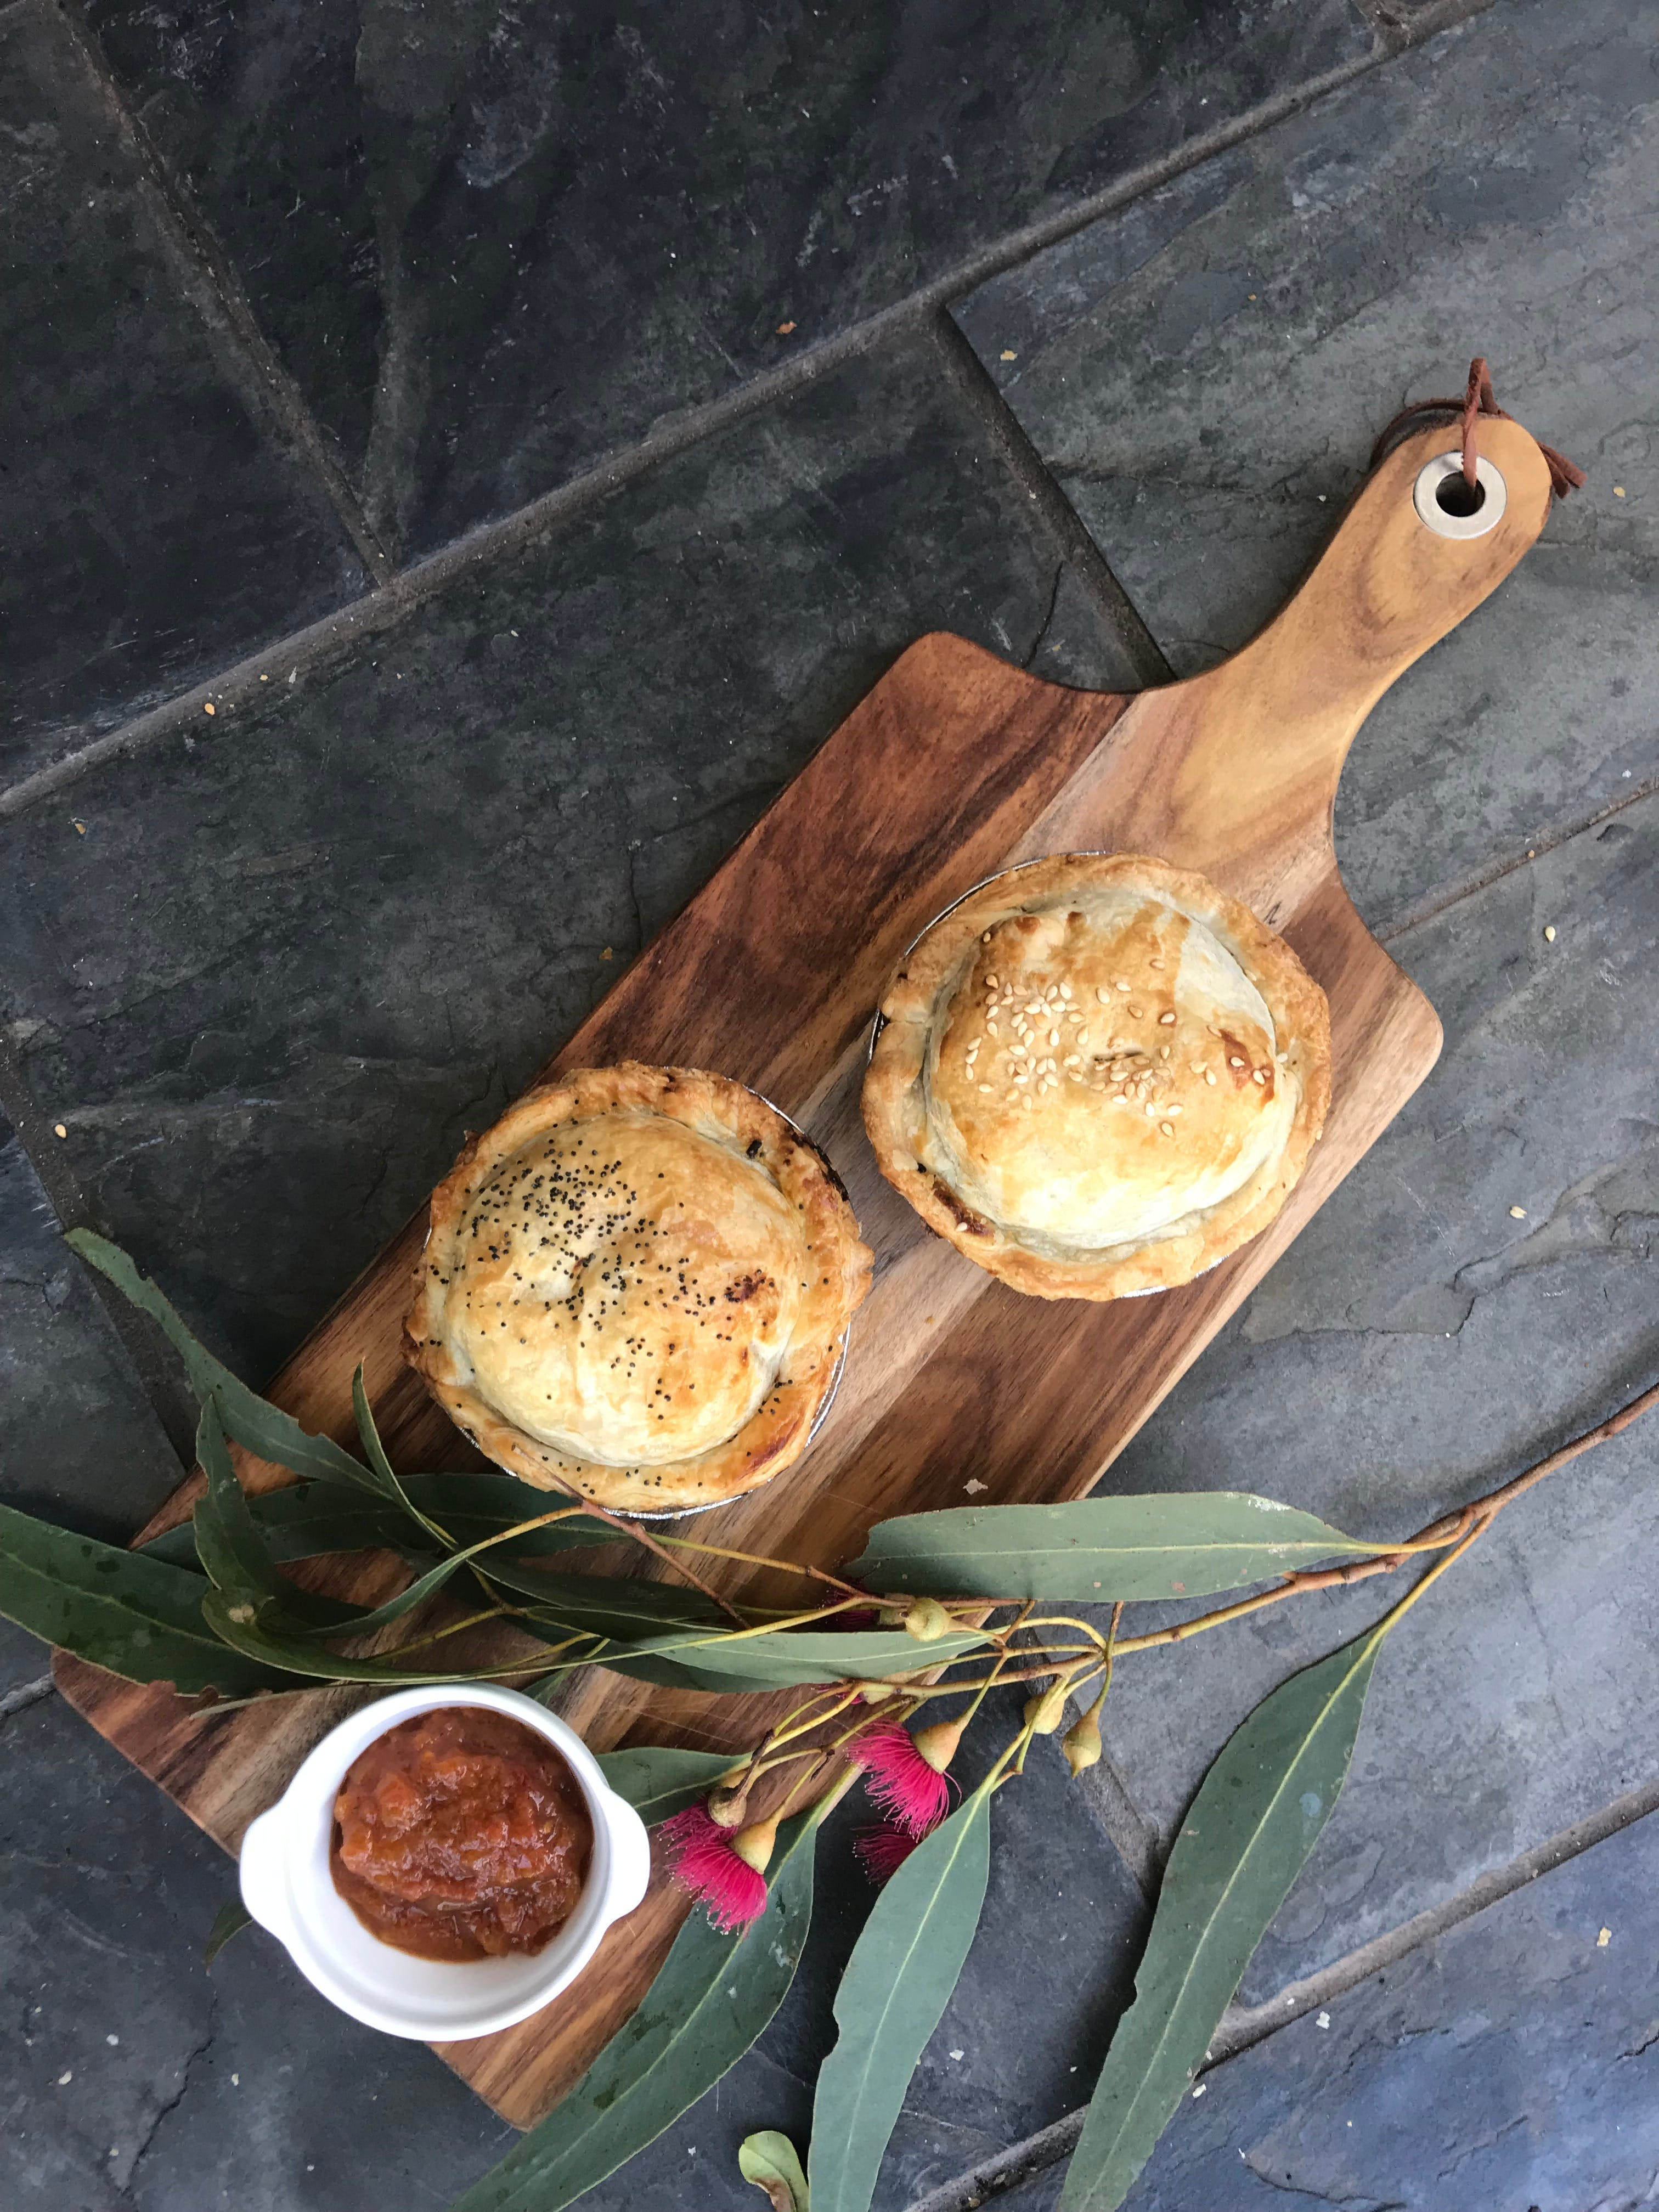 Aged Wine and Vintage Pies - Pubs Sydney